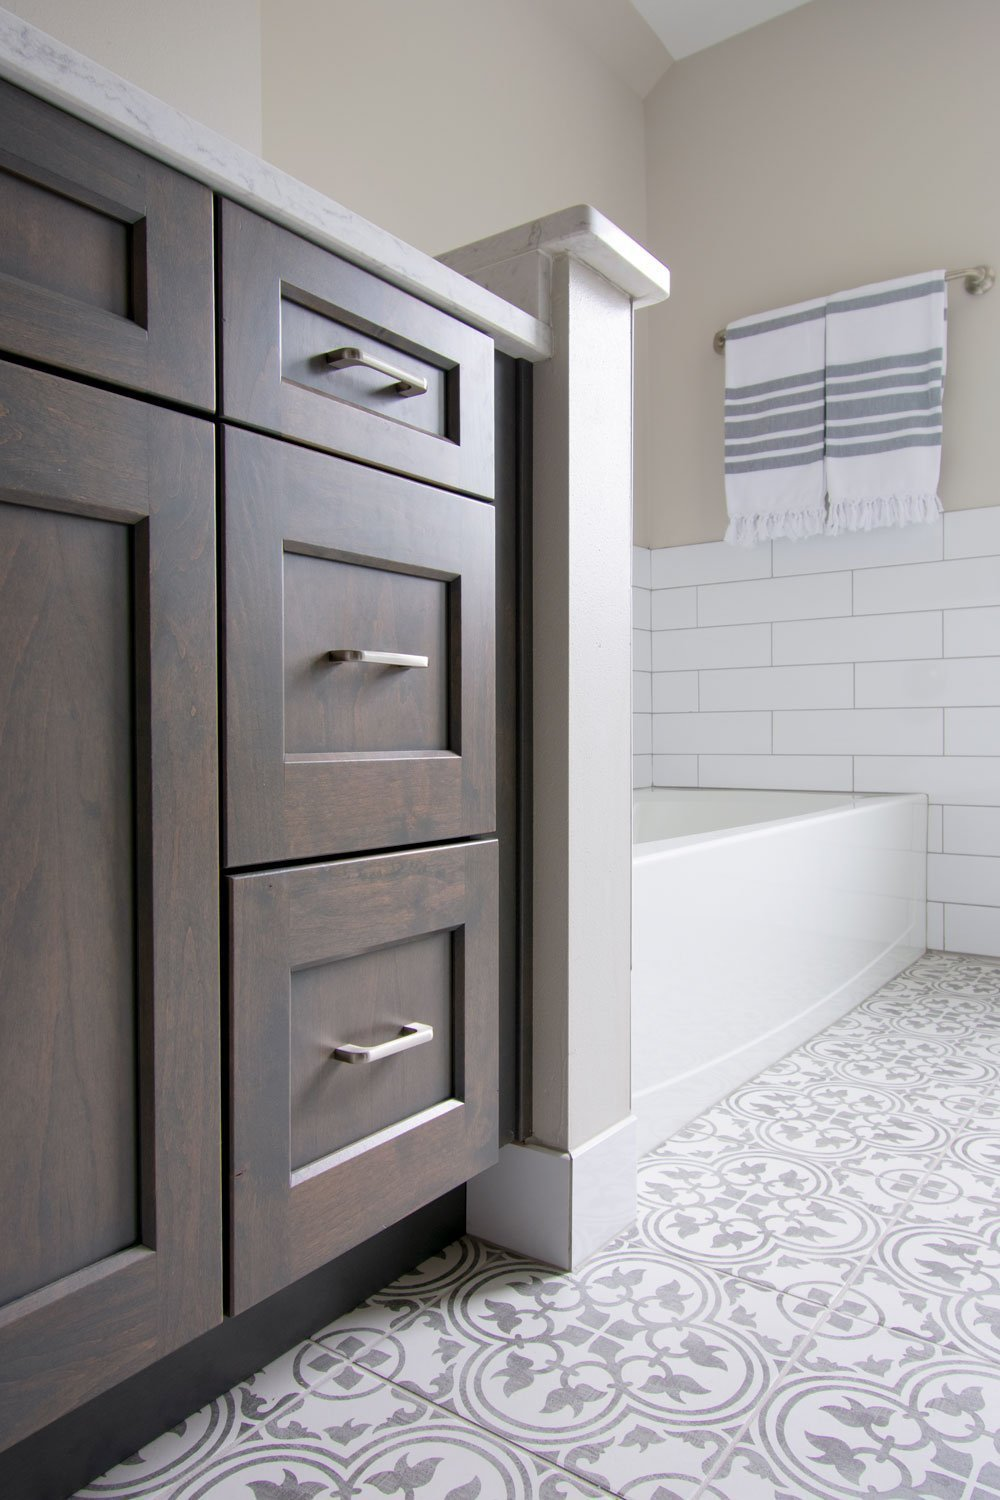 Fresh Wauwatosa Bathroom Kowalske Kitchen Amp Bath